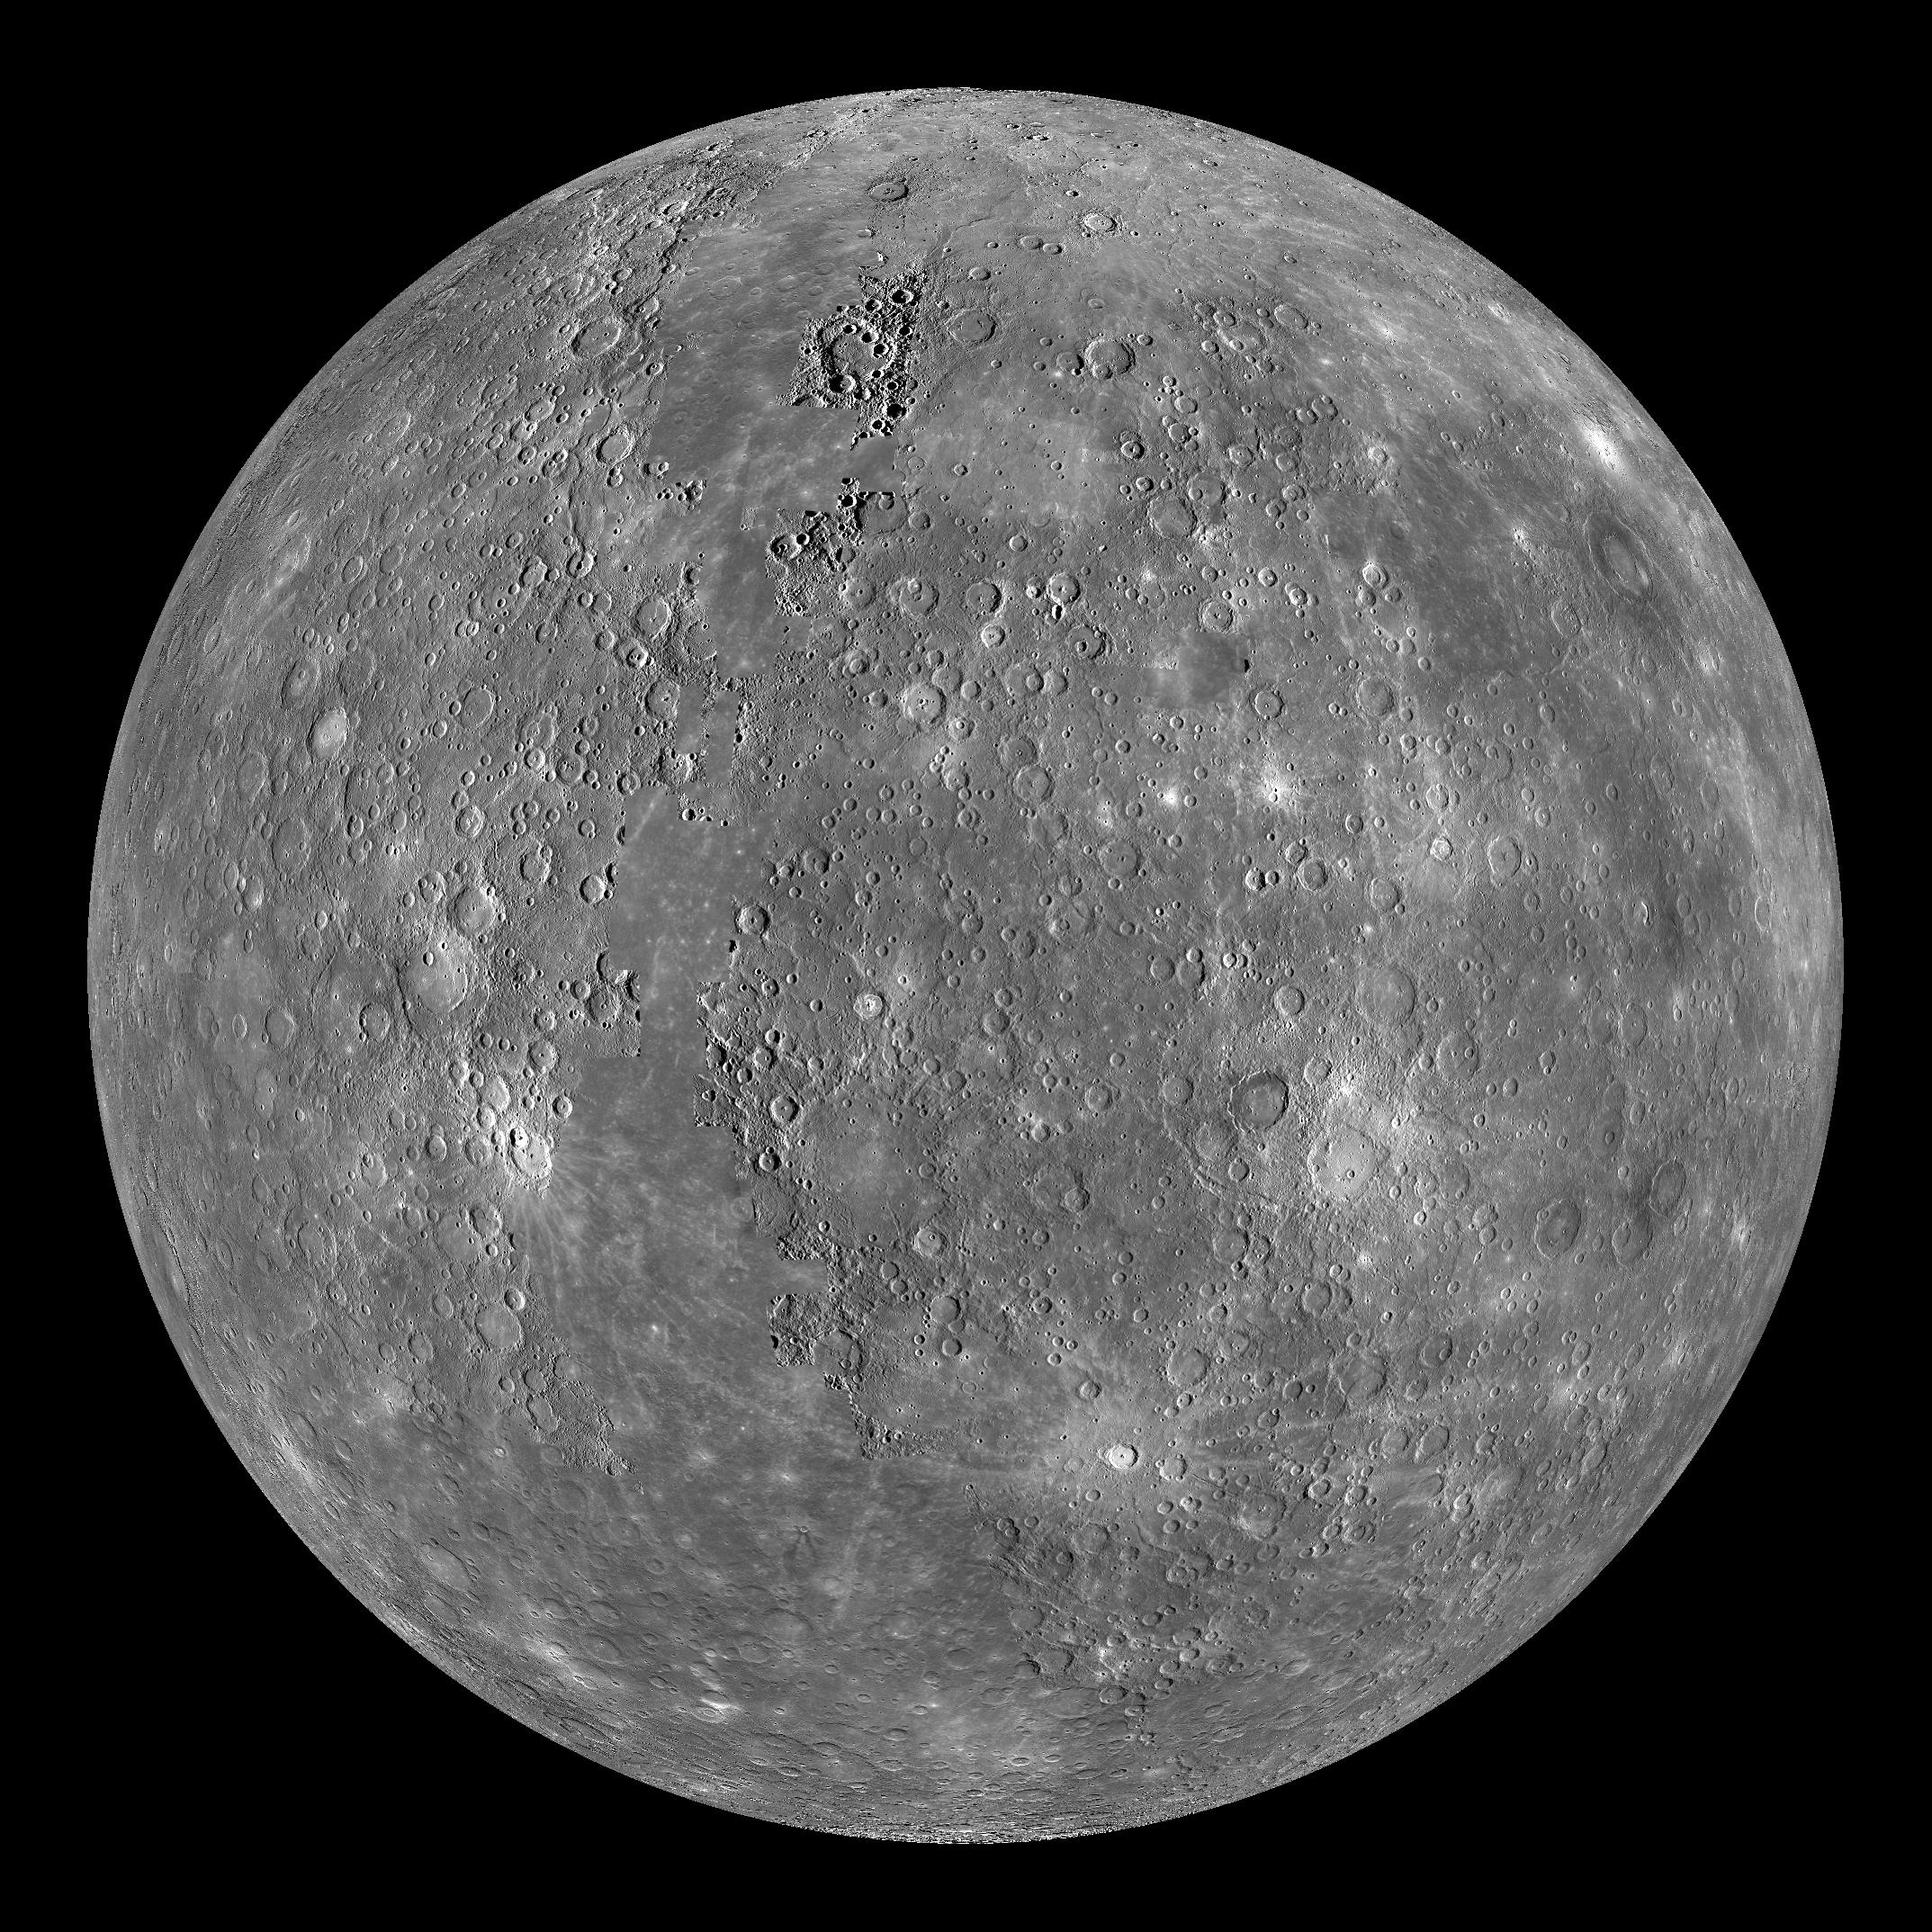 [Pilt: Mercury_Globe-MESSENGER_mosaic_centered_...-0degE.jpg]